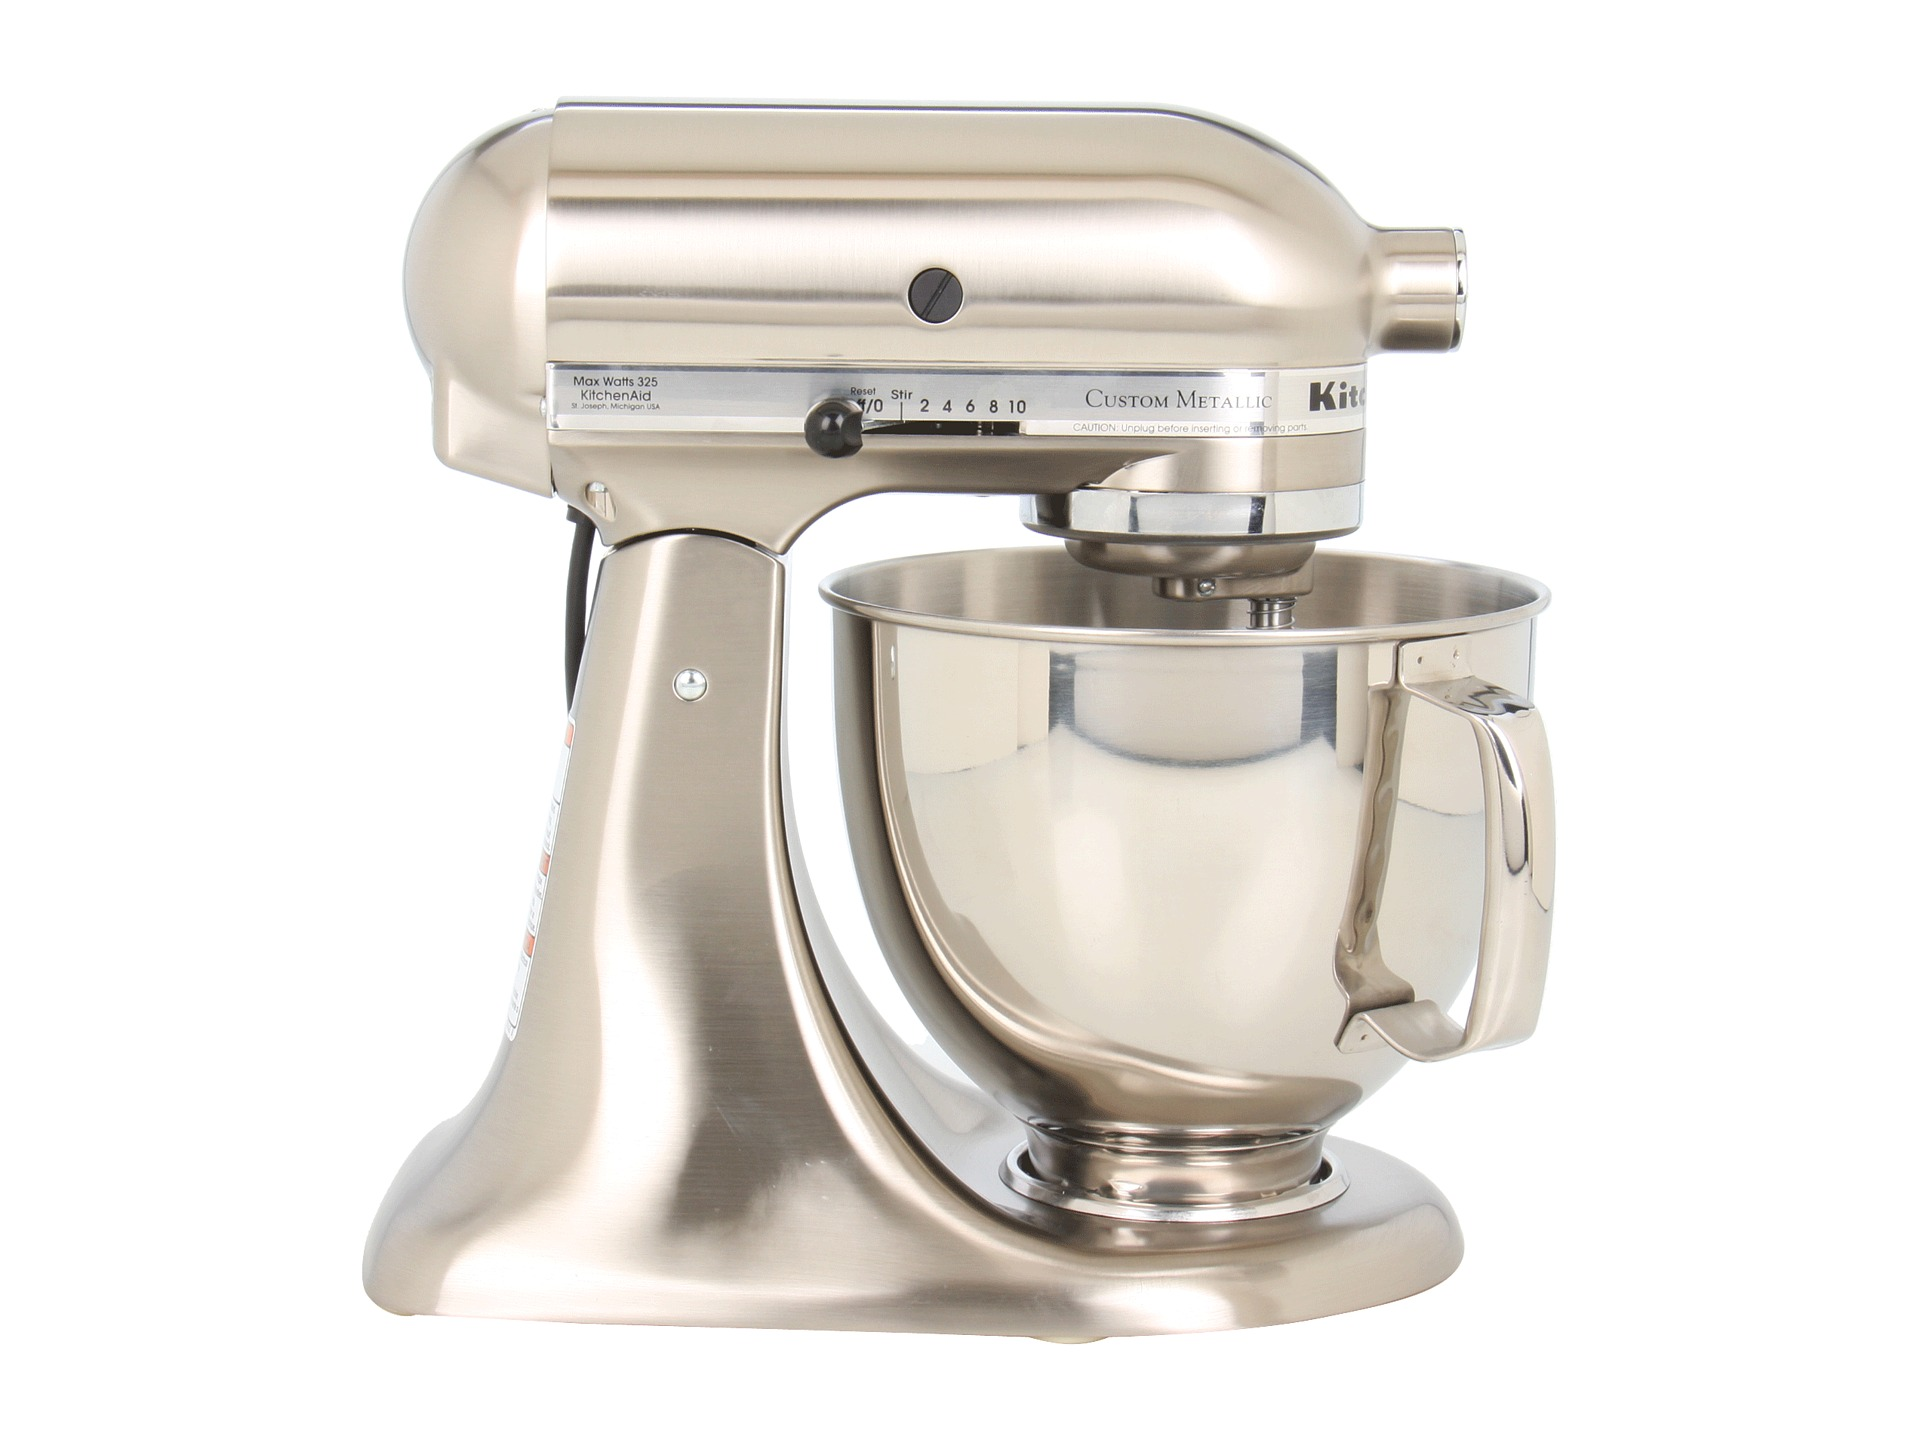 Kitchenaid ksm152ps custom metallic series 5 qt stand for Kitchenaid f series accessories